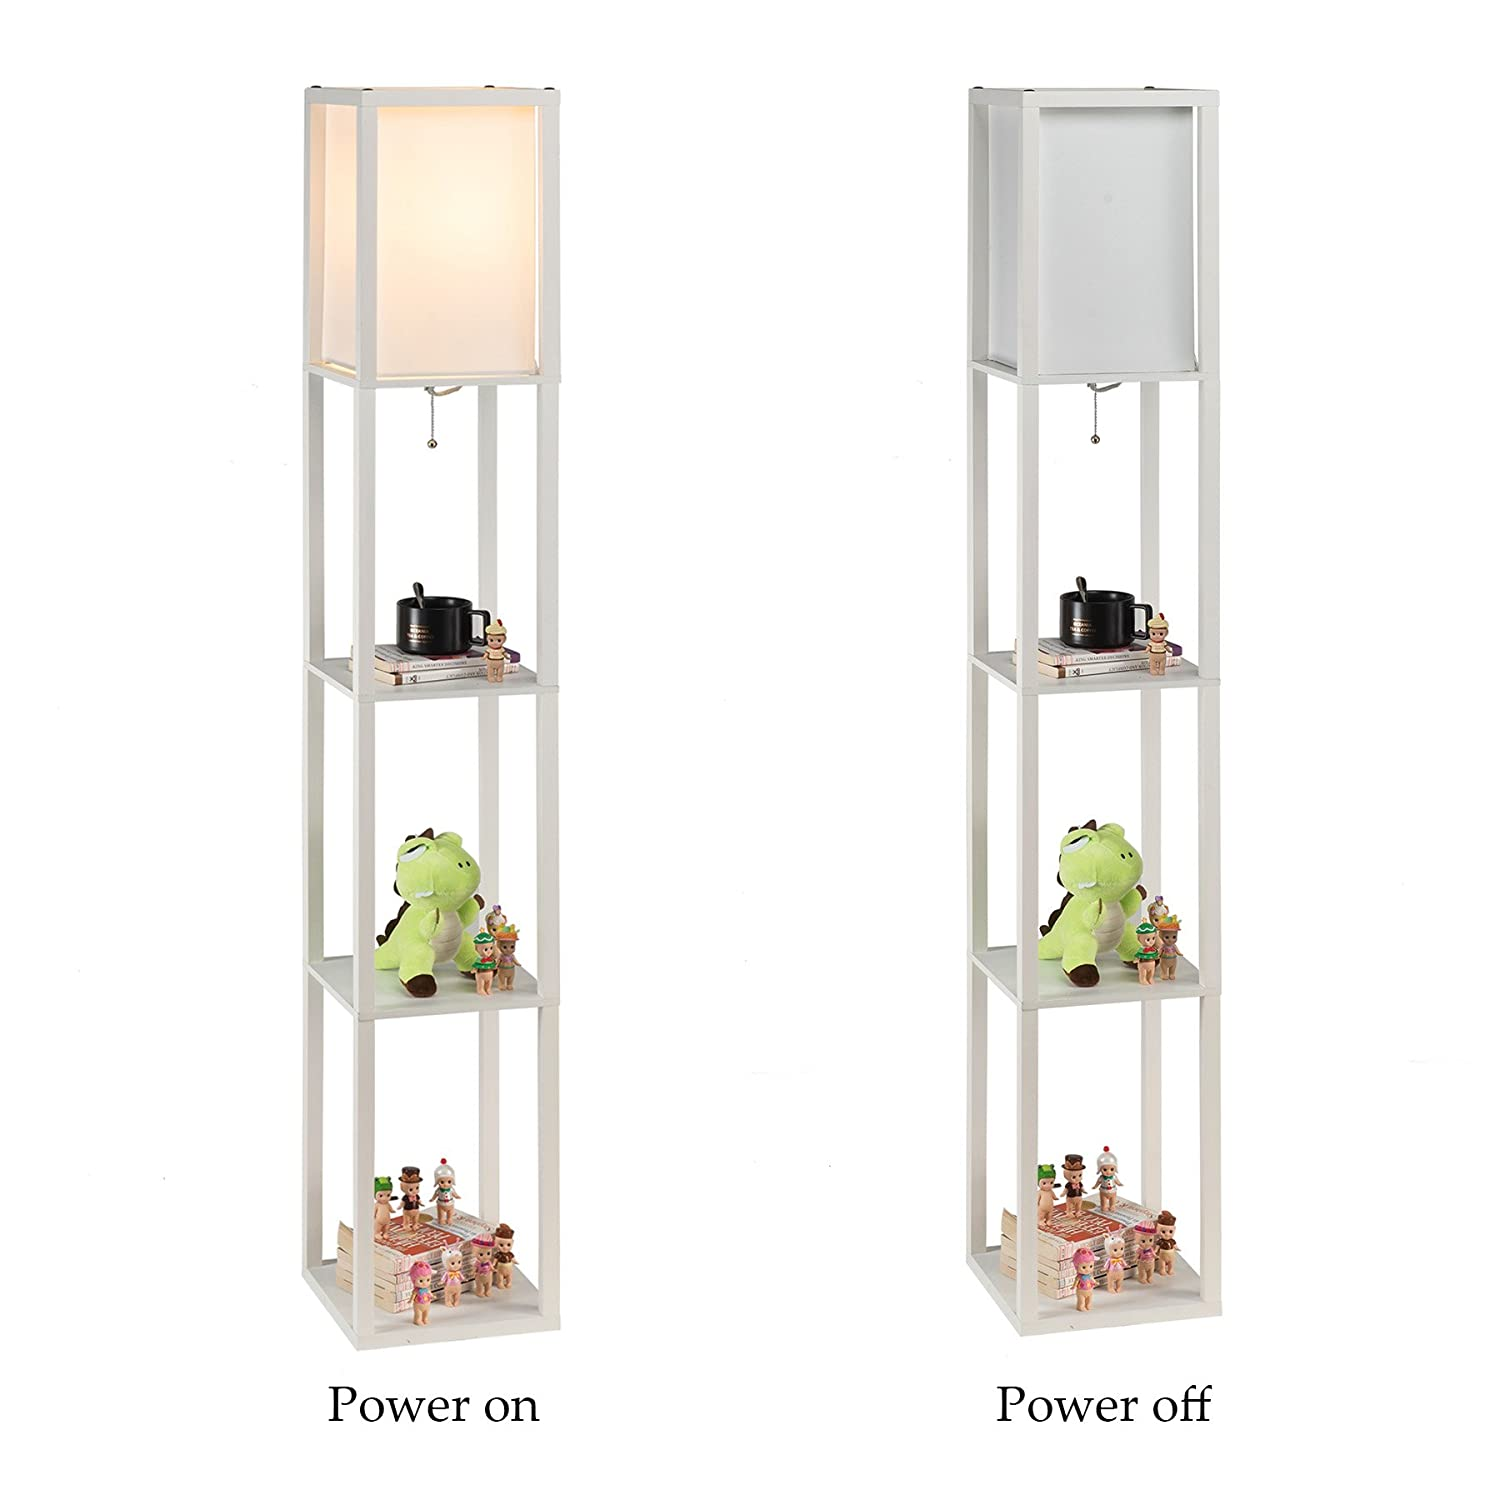 Details About Co-z Led Floor Lamp, Etagere Floor Lamp With Shelves, Modern  Standing Lamp With